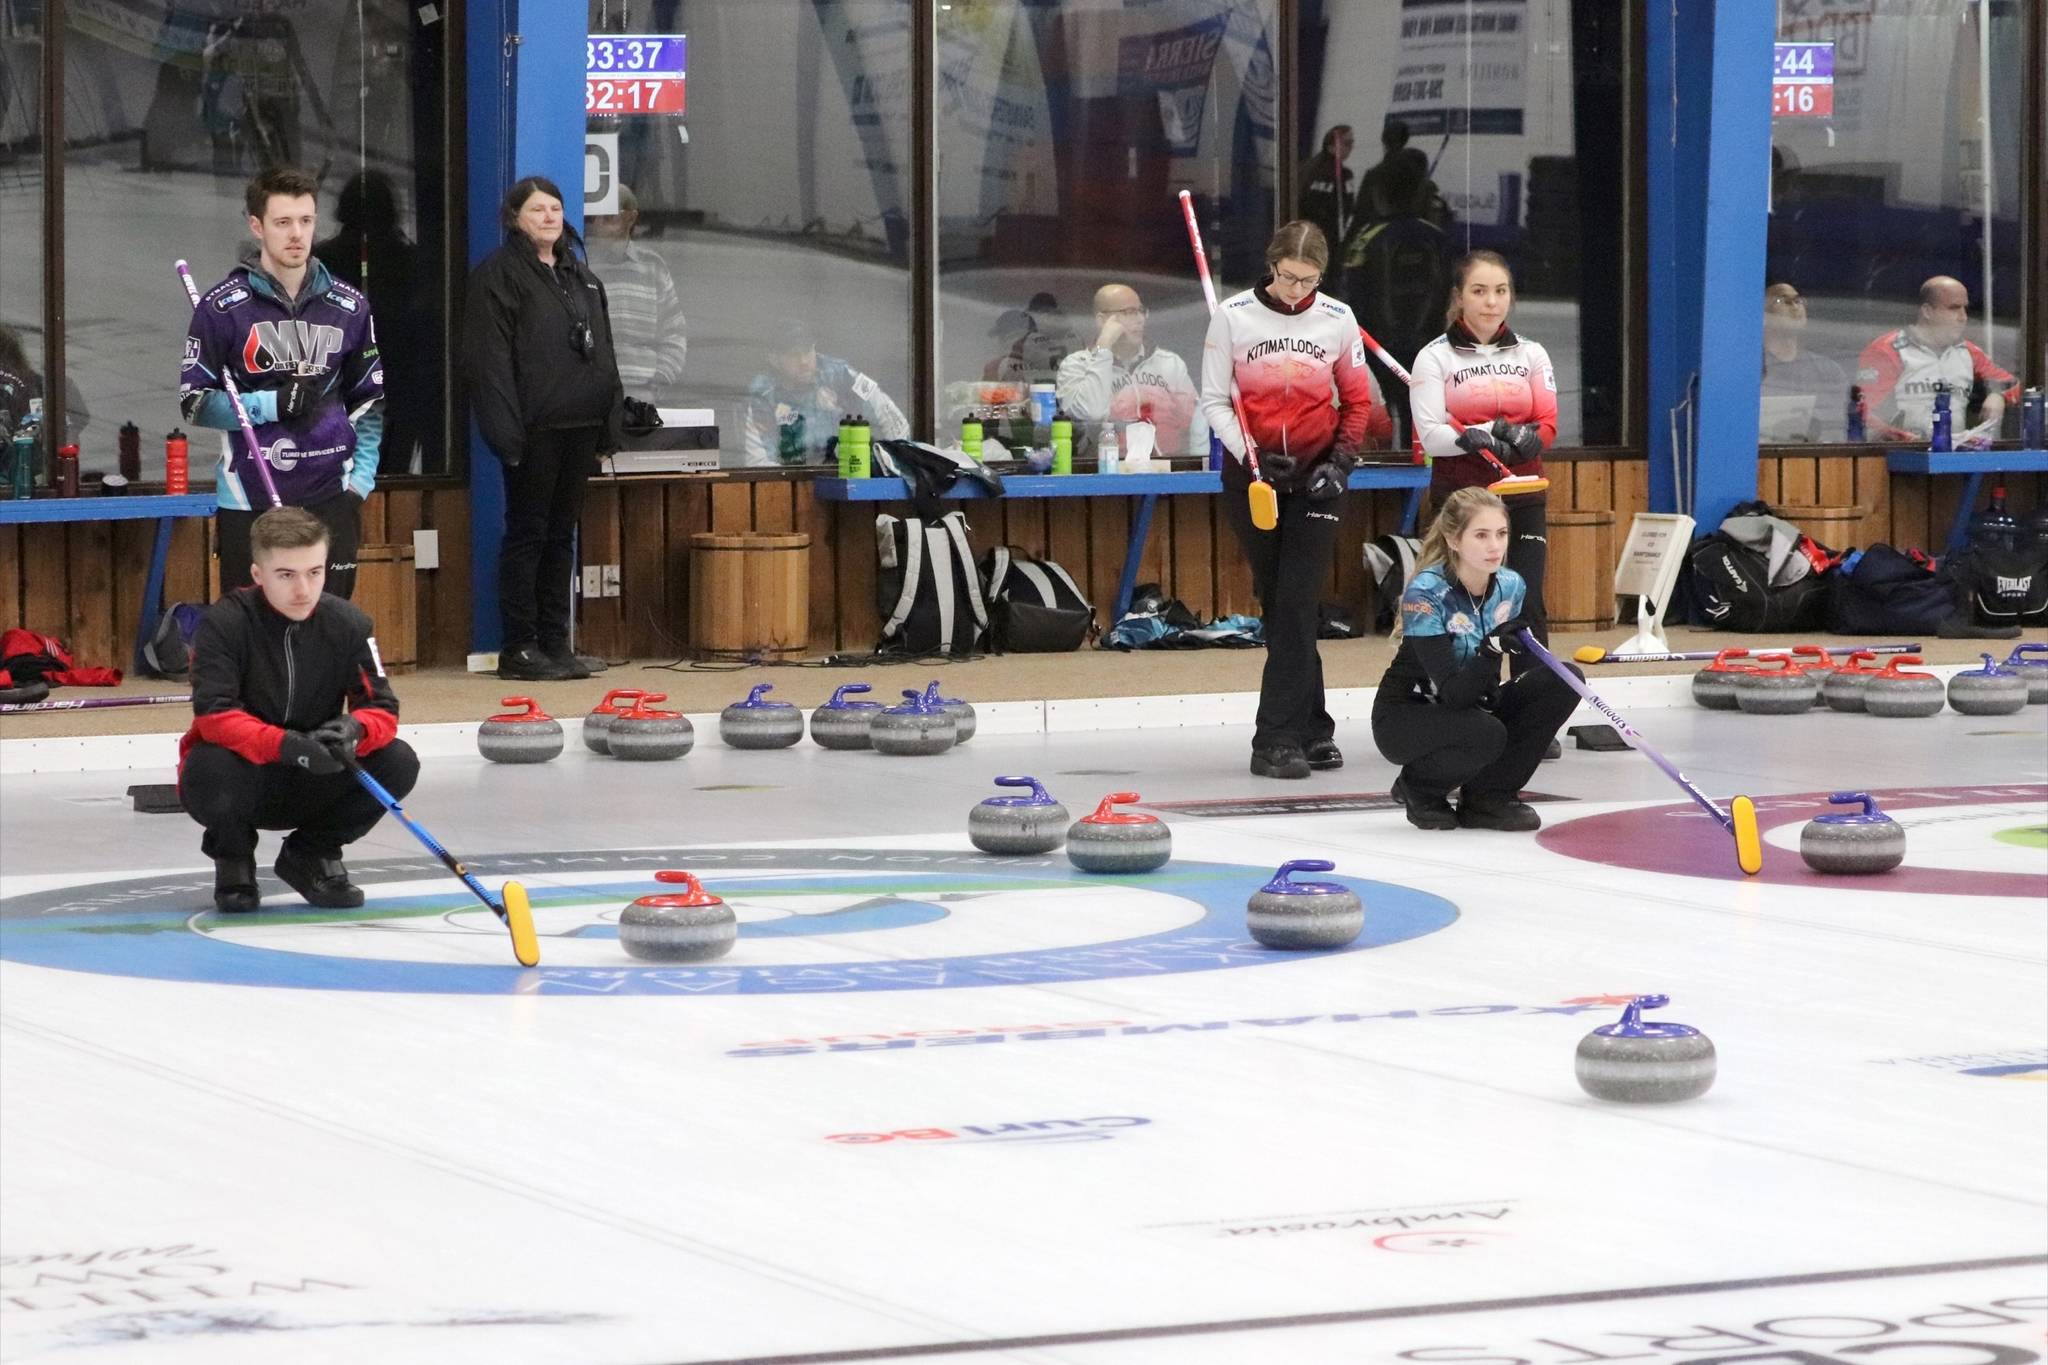 Vernon junior men's skip Erik Colwell looks on as his team delivers a rock while Vernon junior women's third Jaelyn Cotter does the same for her skip Megan McGillivray in Draw 2 action in Vernon on Thursday, Dec. 27, 2018. (John K. White/Morning Star)